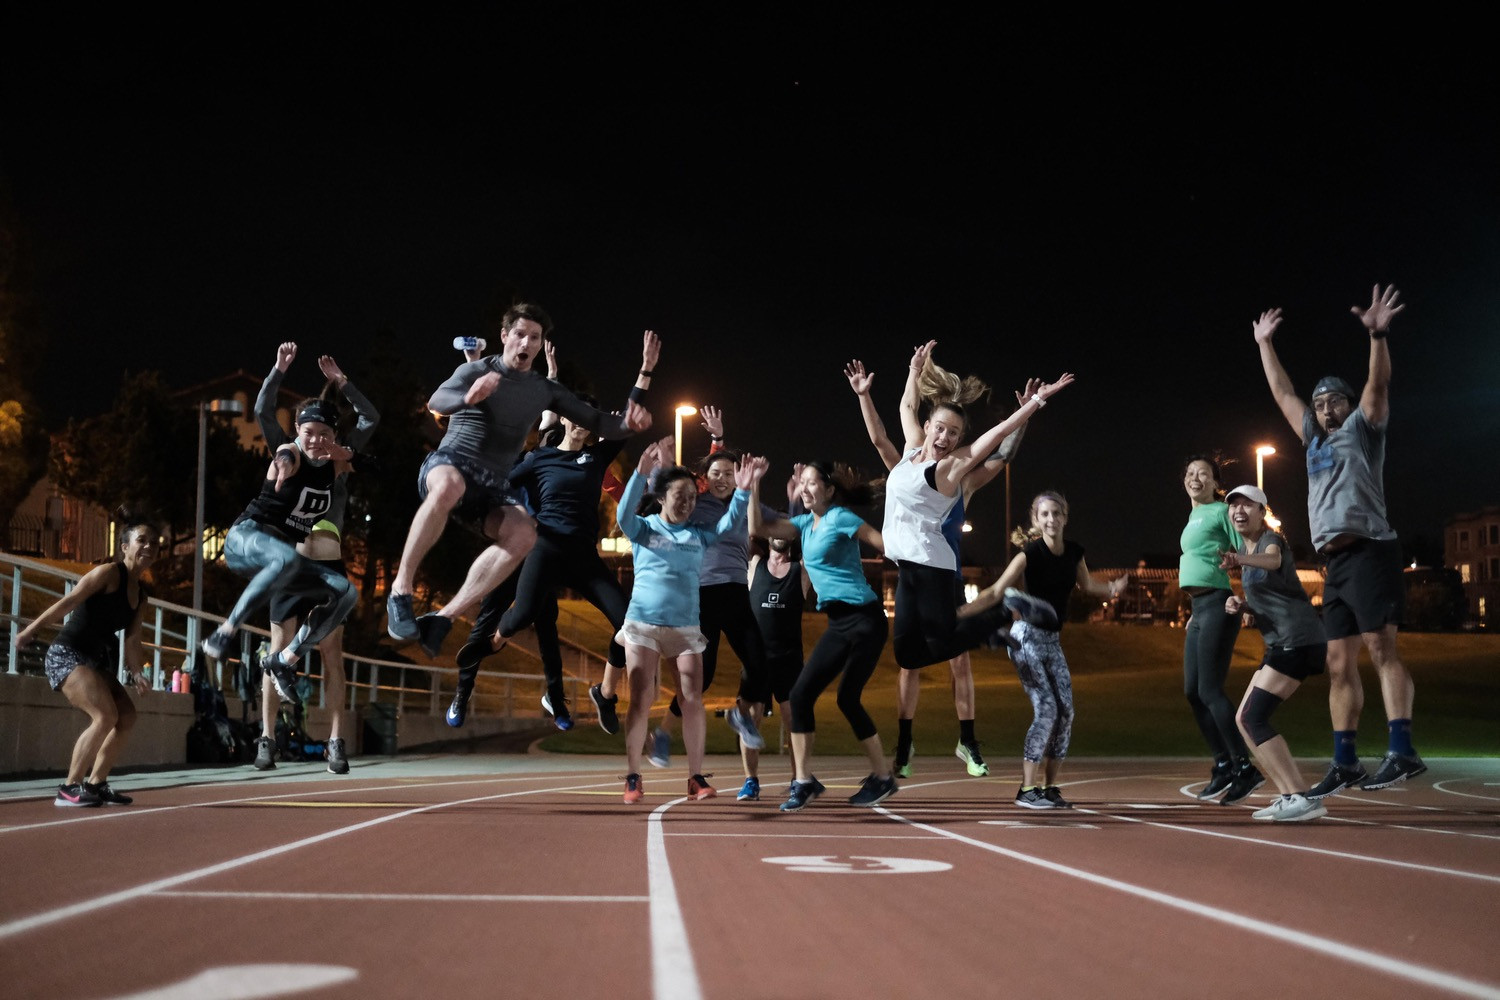 Image of Nth degree members jumping on the track.